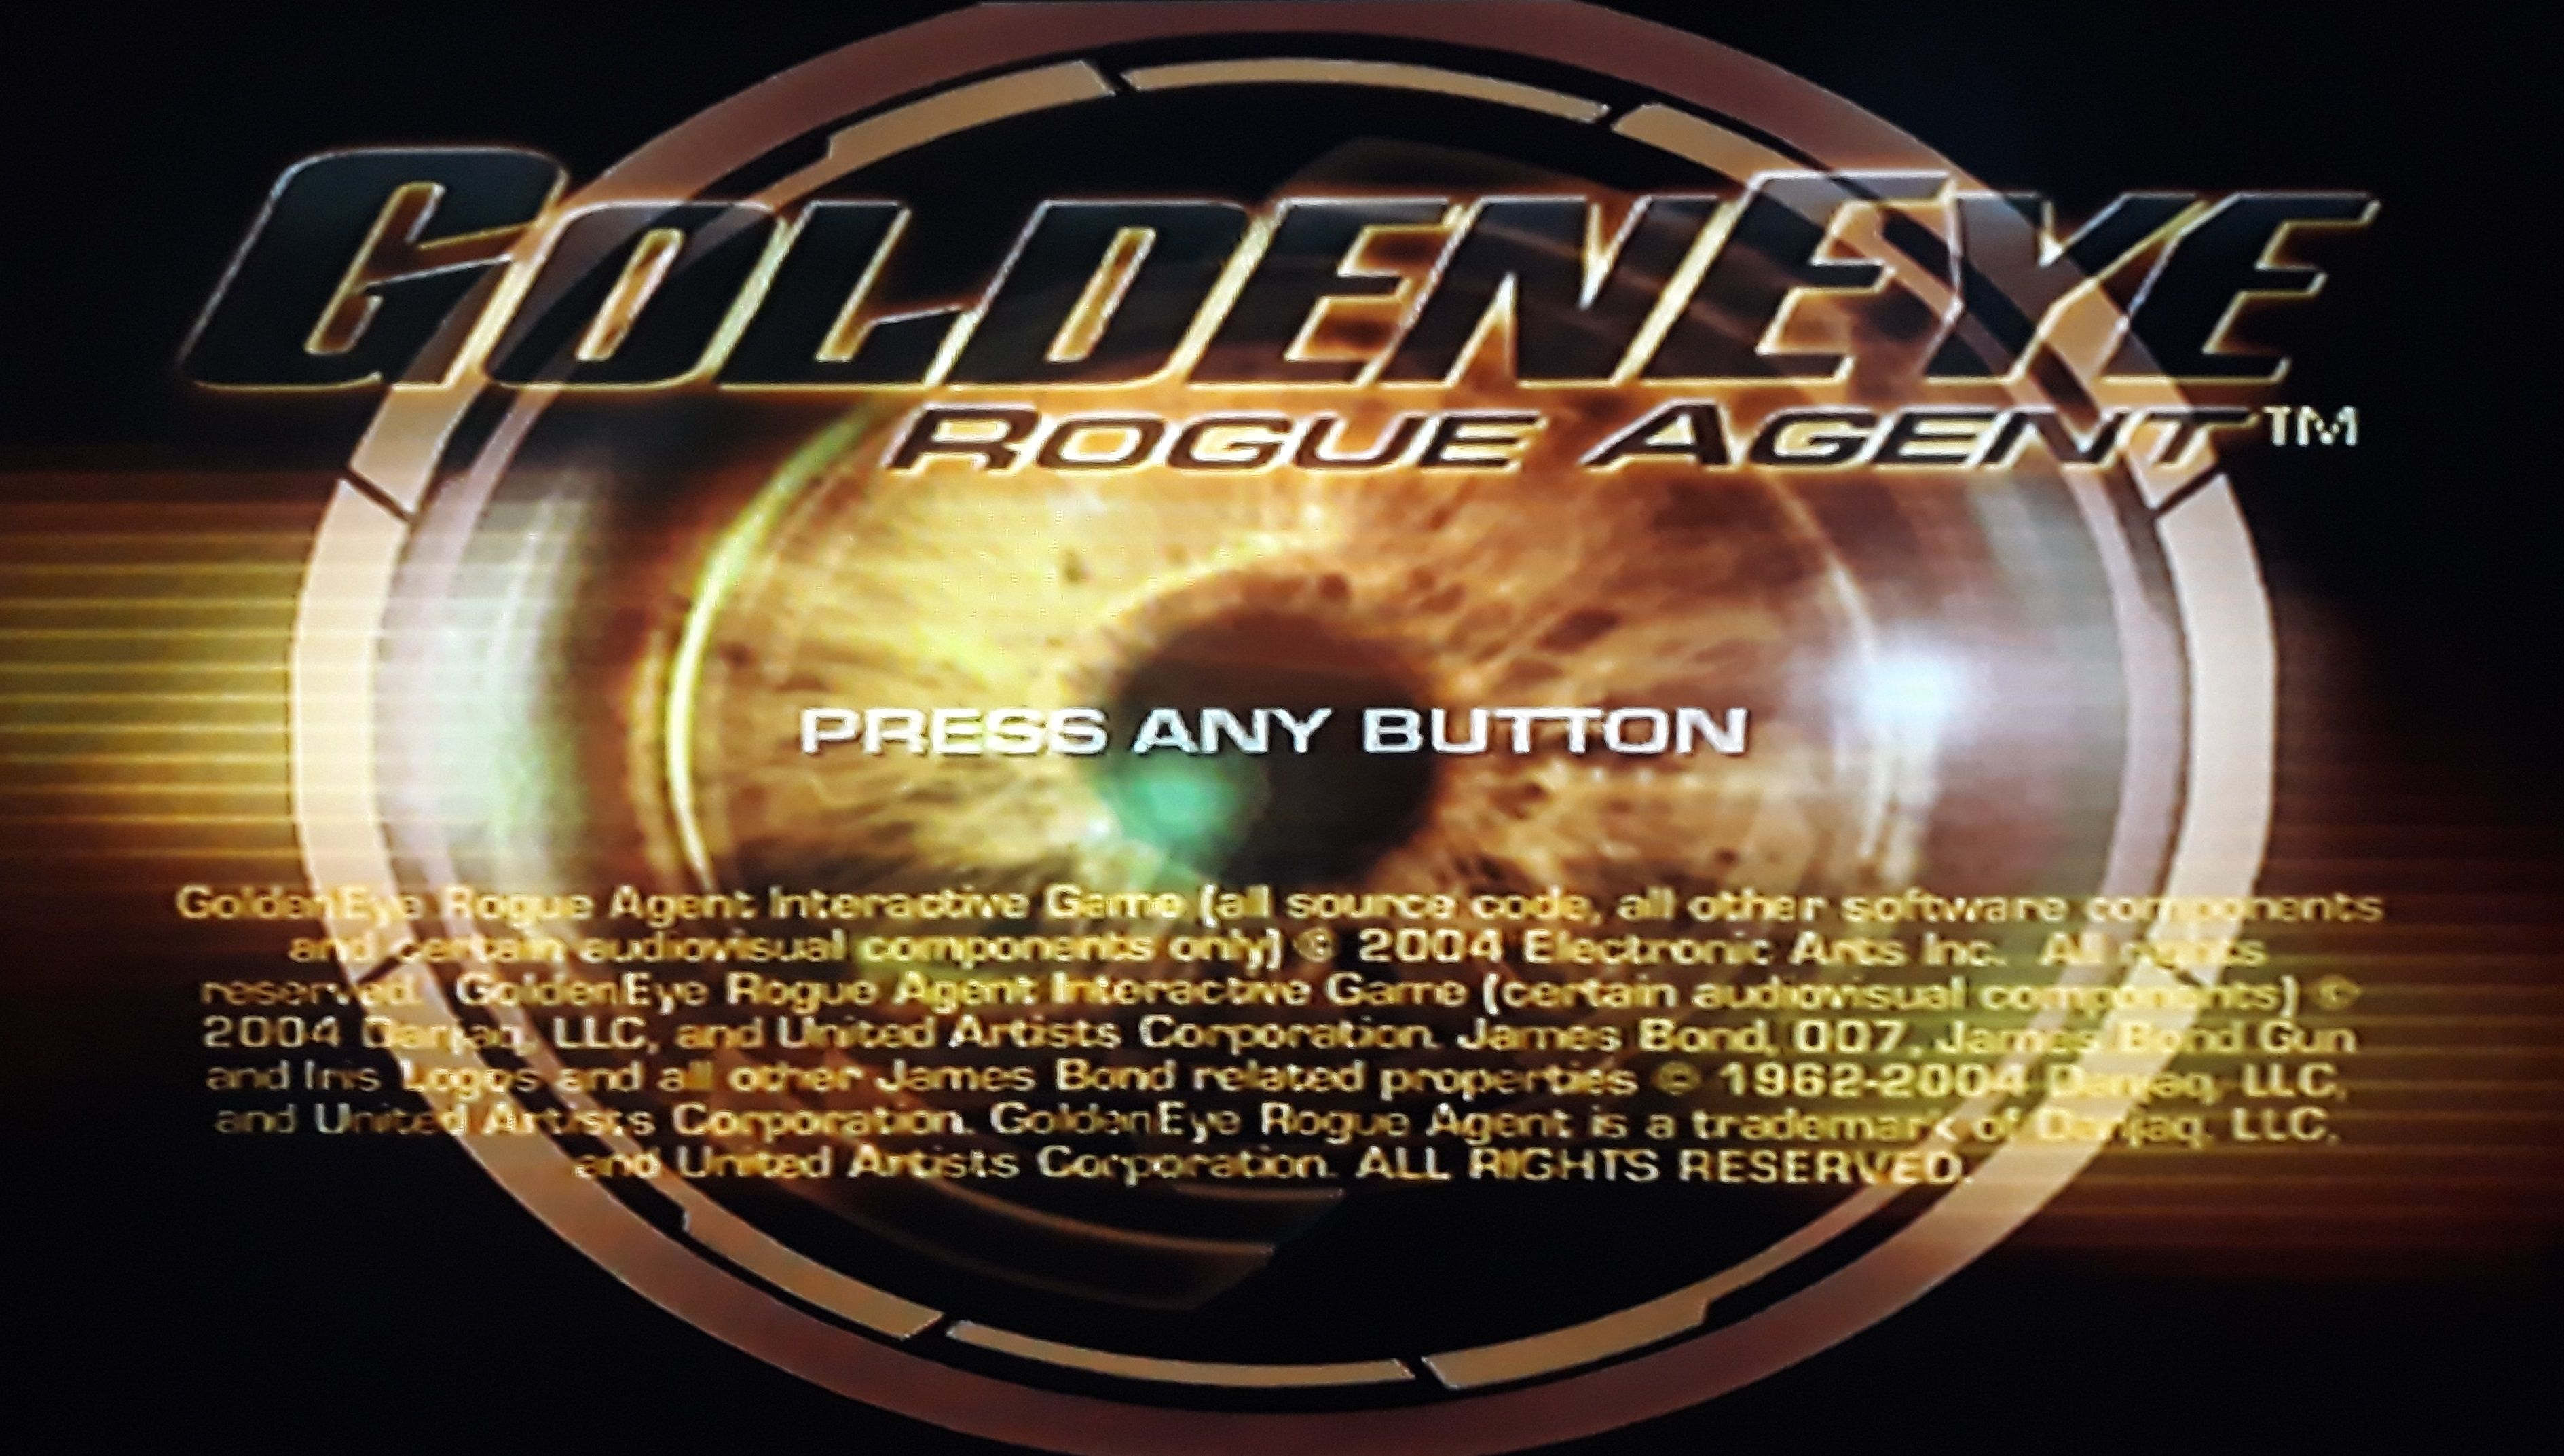 007 Item GoldenEye Rogue Agent PlayStation 2 game in